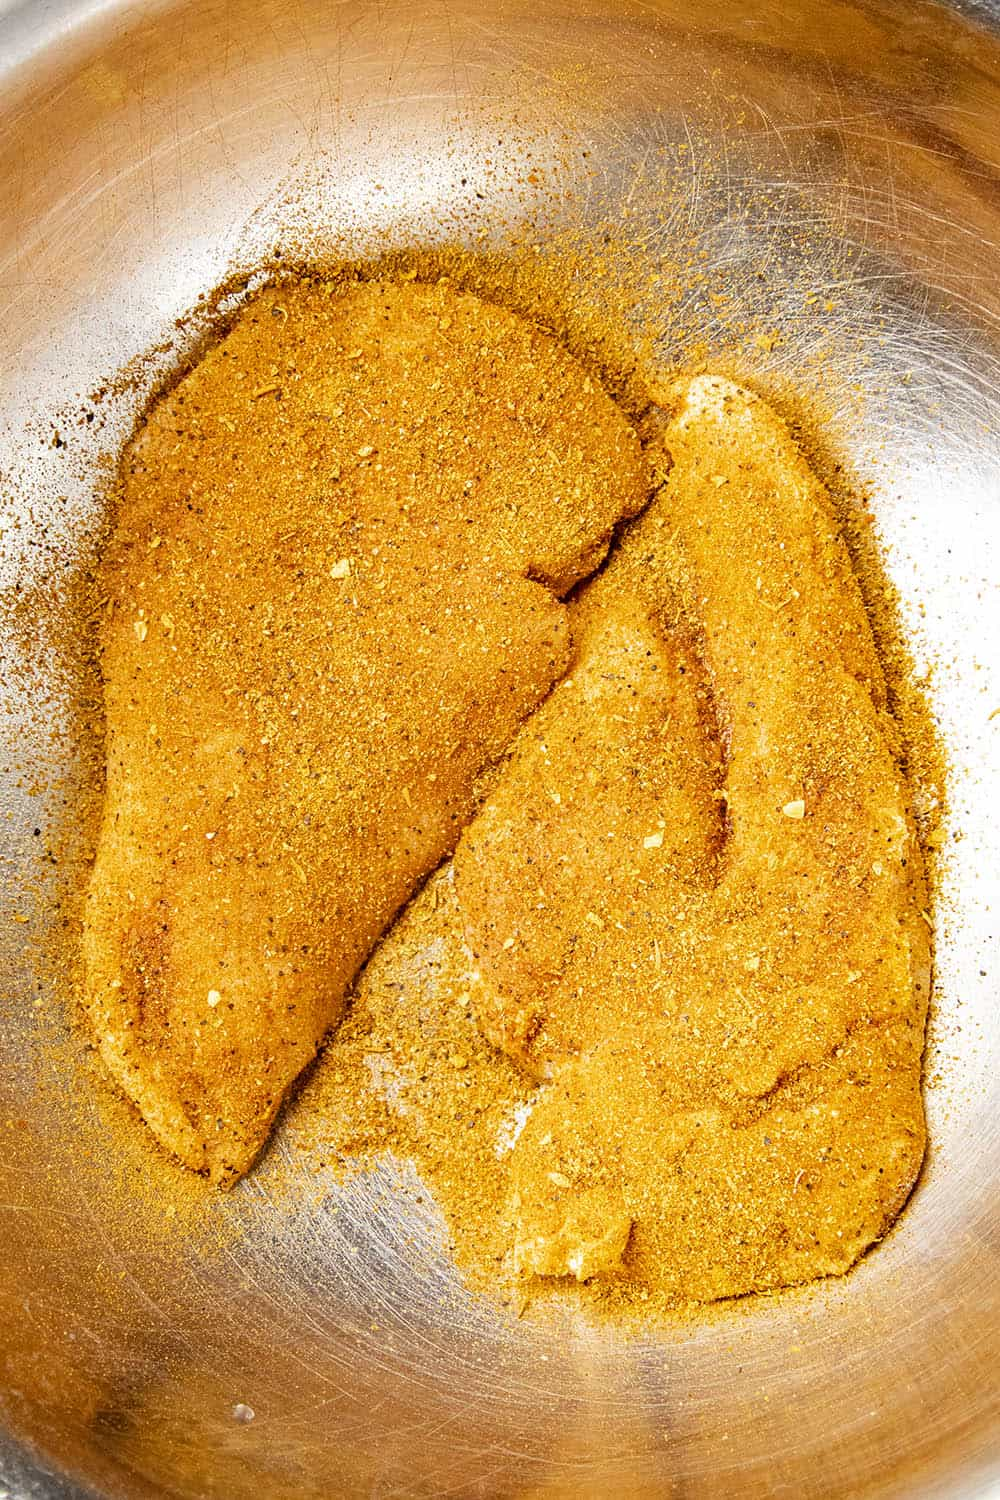 Chicken breasts coated with blackening seasoning